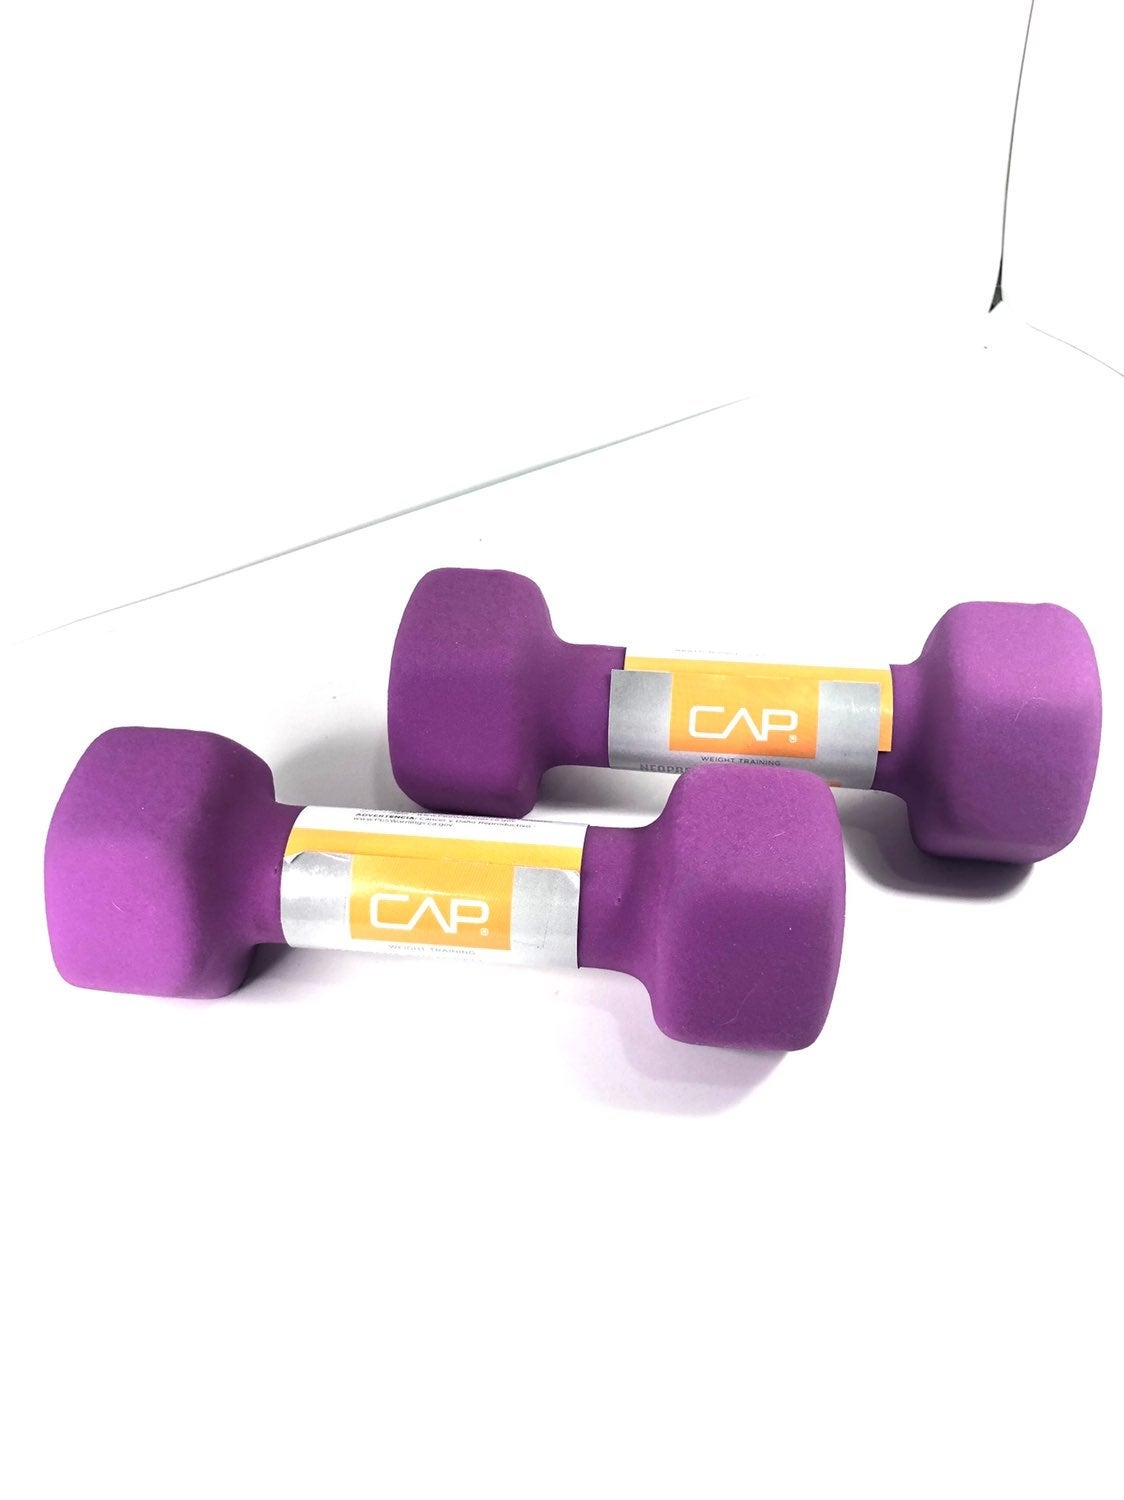 5lb CAP Neoprene Dumbbells set (PAIR)